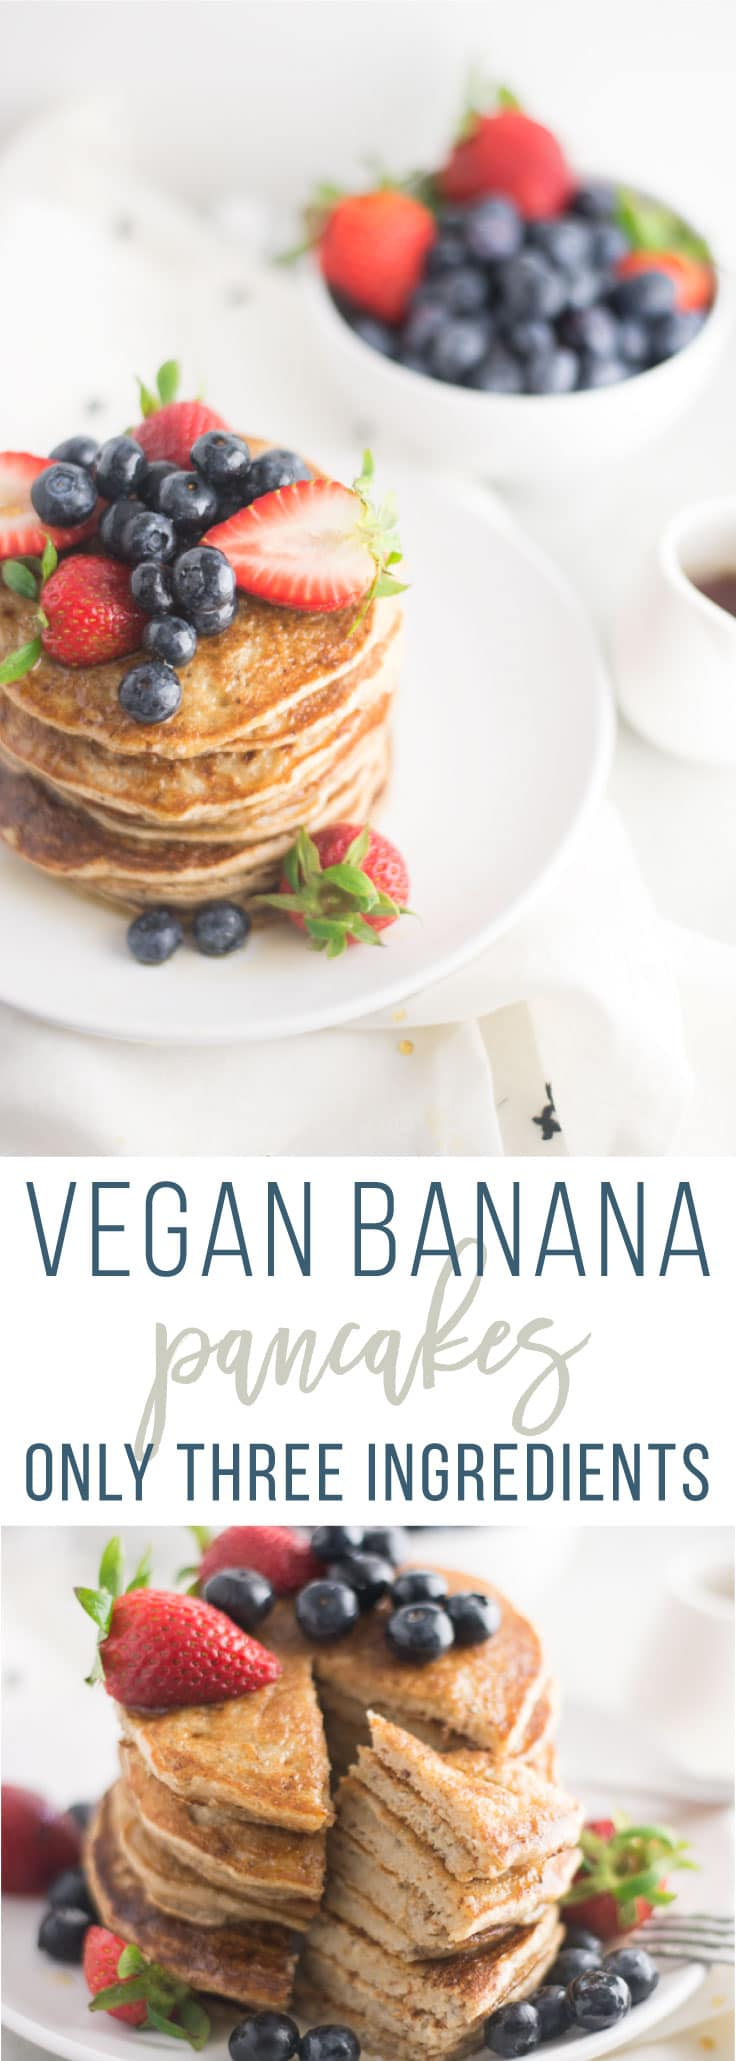 Vegan Banana Pancakes - 3 Ingredients -- These delicious pancakes are so easy to make and only require three ingredients. Grab your favorite pancake mix and just add banana and almond milk! Top with fresh fruit and maple syrup for the ultimate breakfast. #breakfast #brunch #vegan #glutenfree #cleaneating #healthy #plantbased  - mindfulavocado